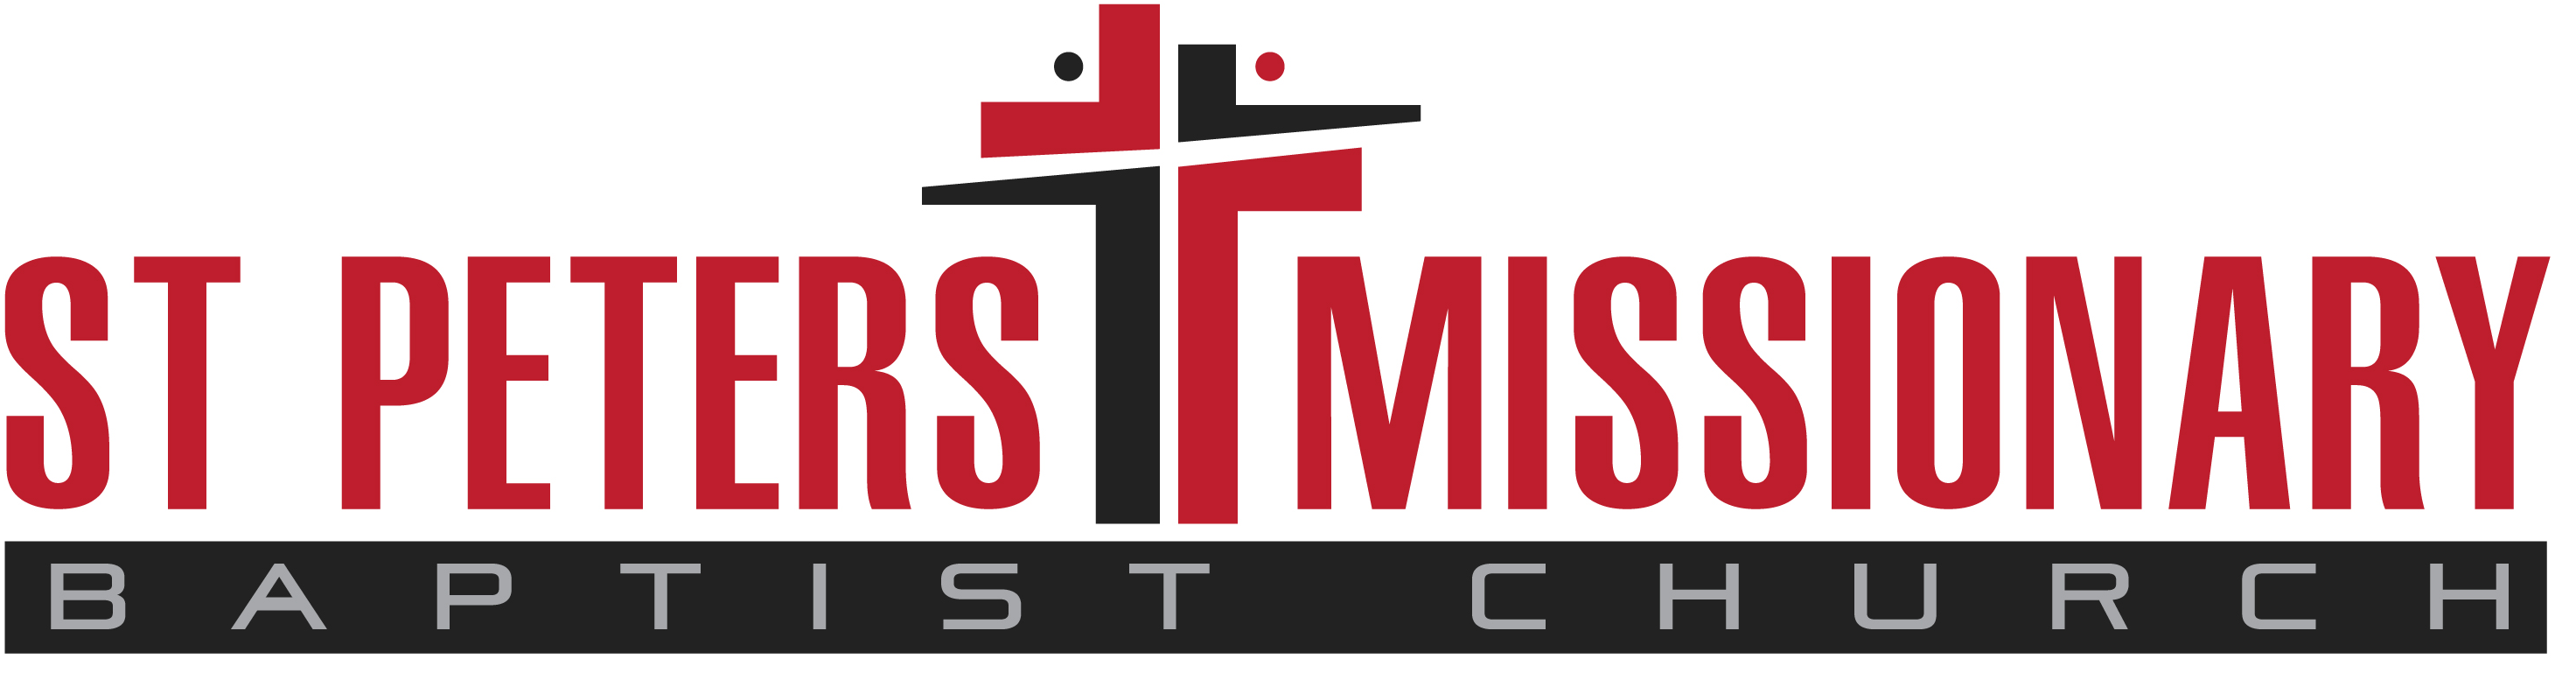 St Peters Missionary Baptist Church Logo